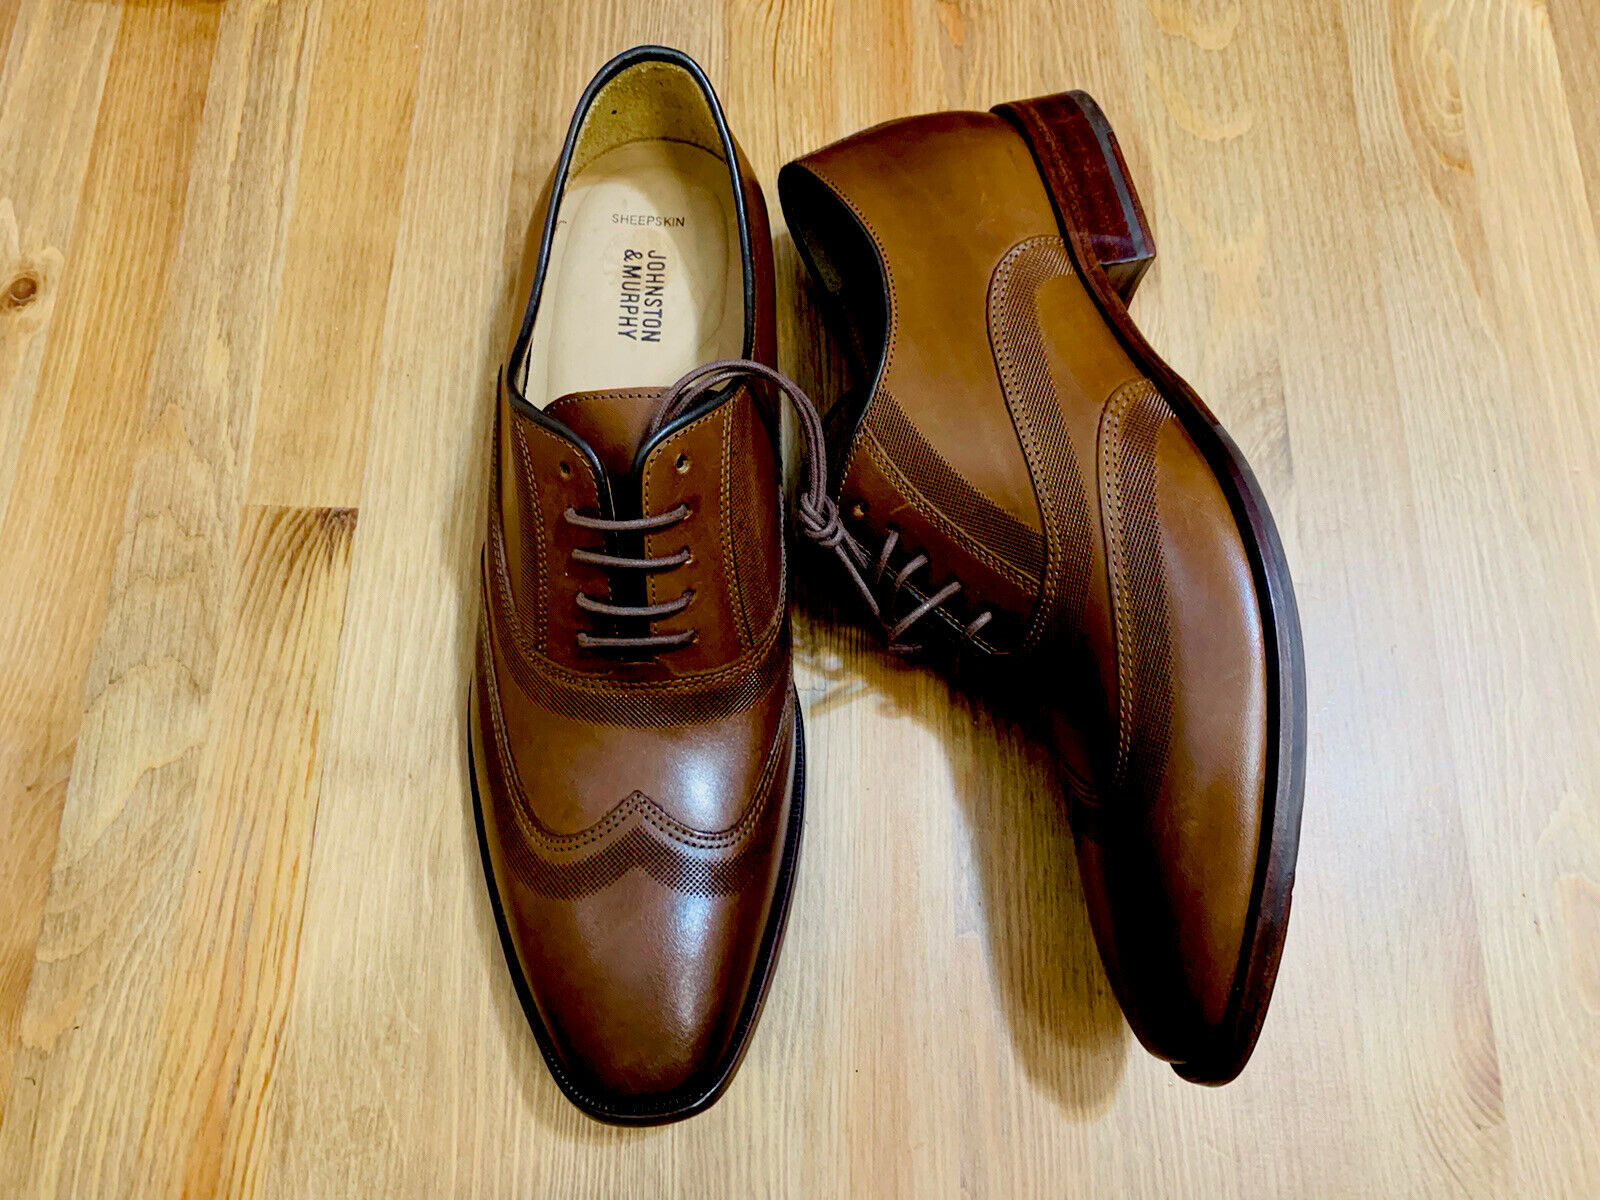 Johnston & Murphy McClain lace up wingtip oxford shoes brown 4752 NWOB sz 11